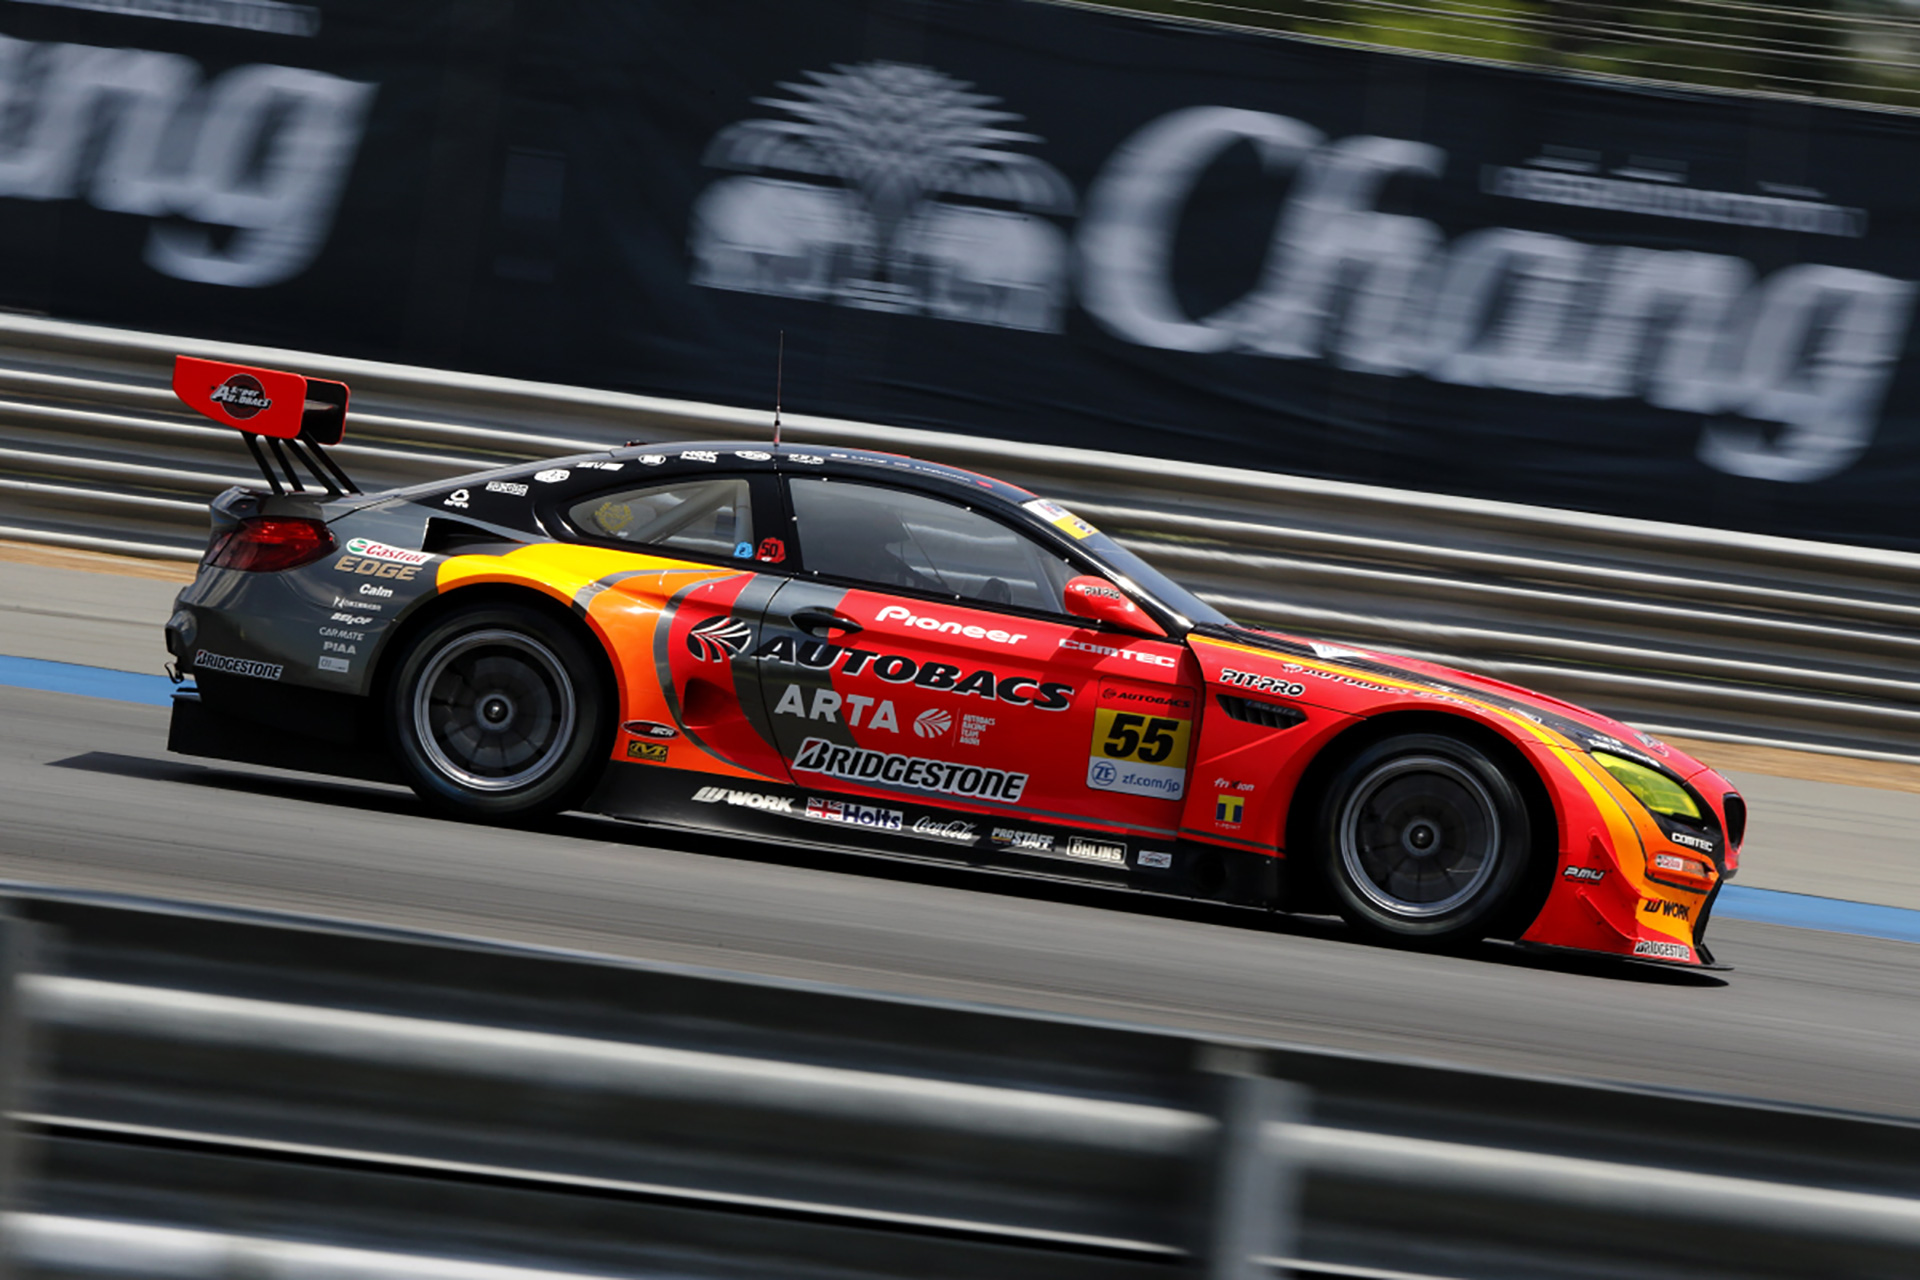 Big points and consistency the target for GT300 points leader.